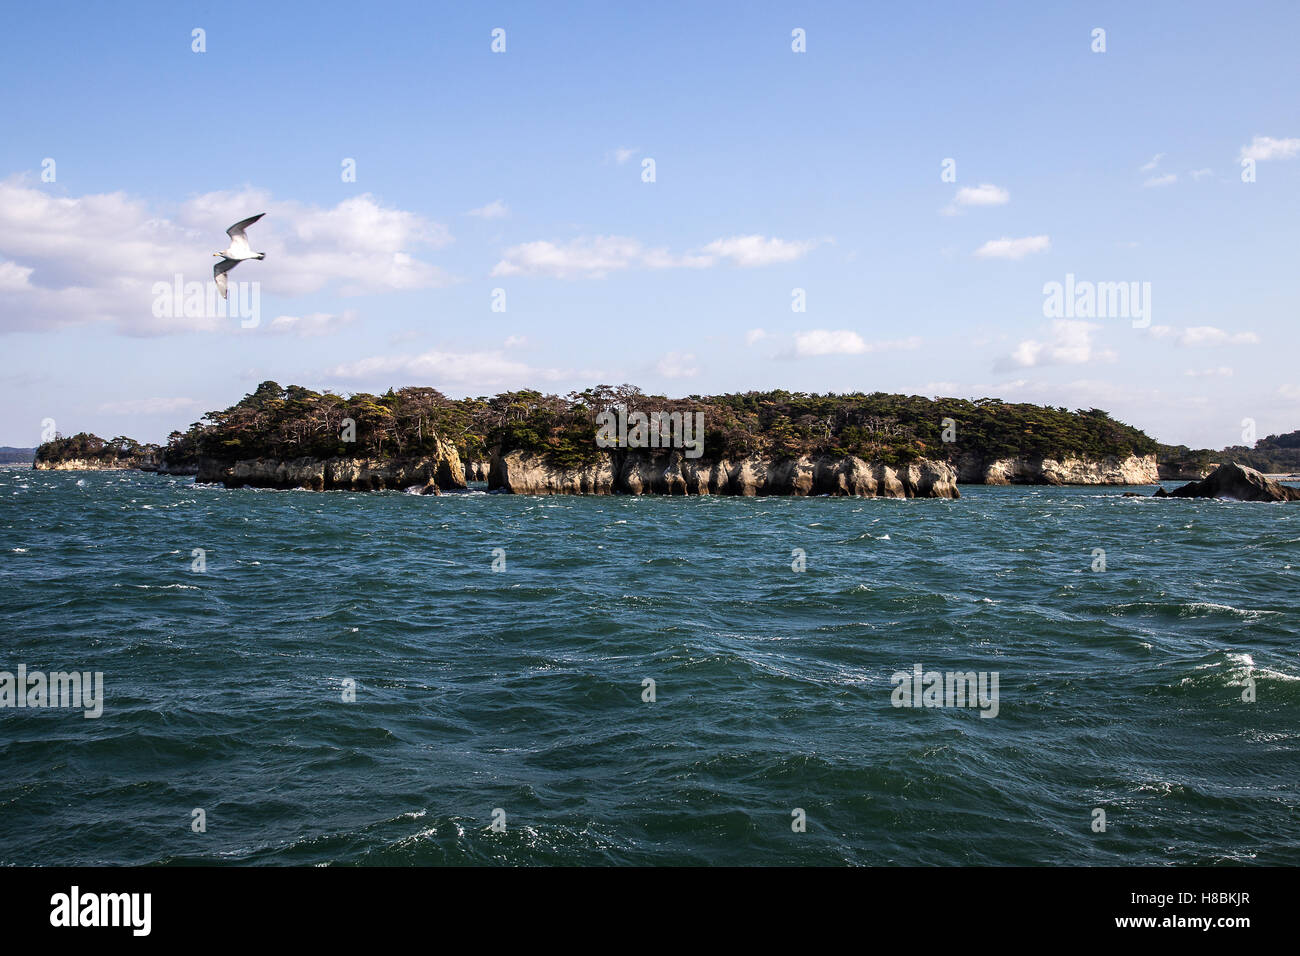 Matsushima Bay has over 260 tiny islands and considered to be one of Japan's Three Great Sights - Nihon Sankei. - Stock Image